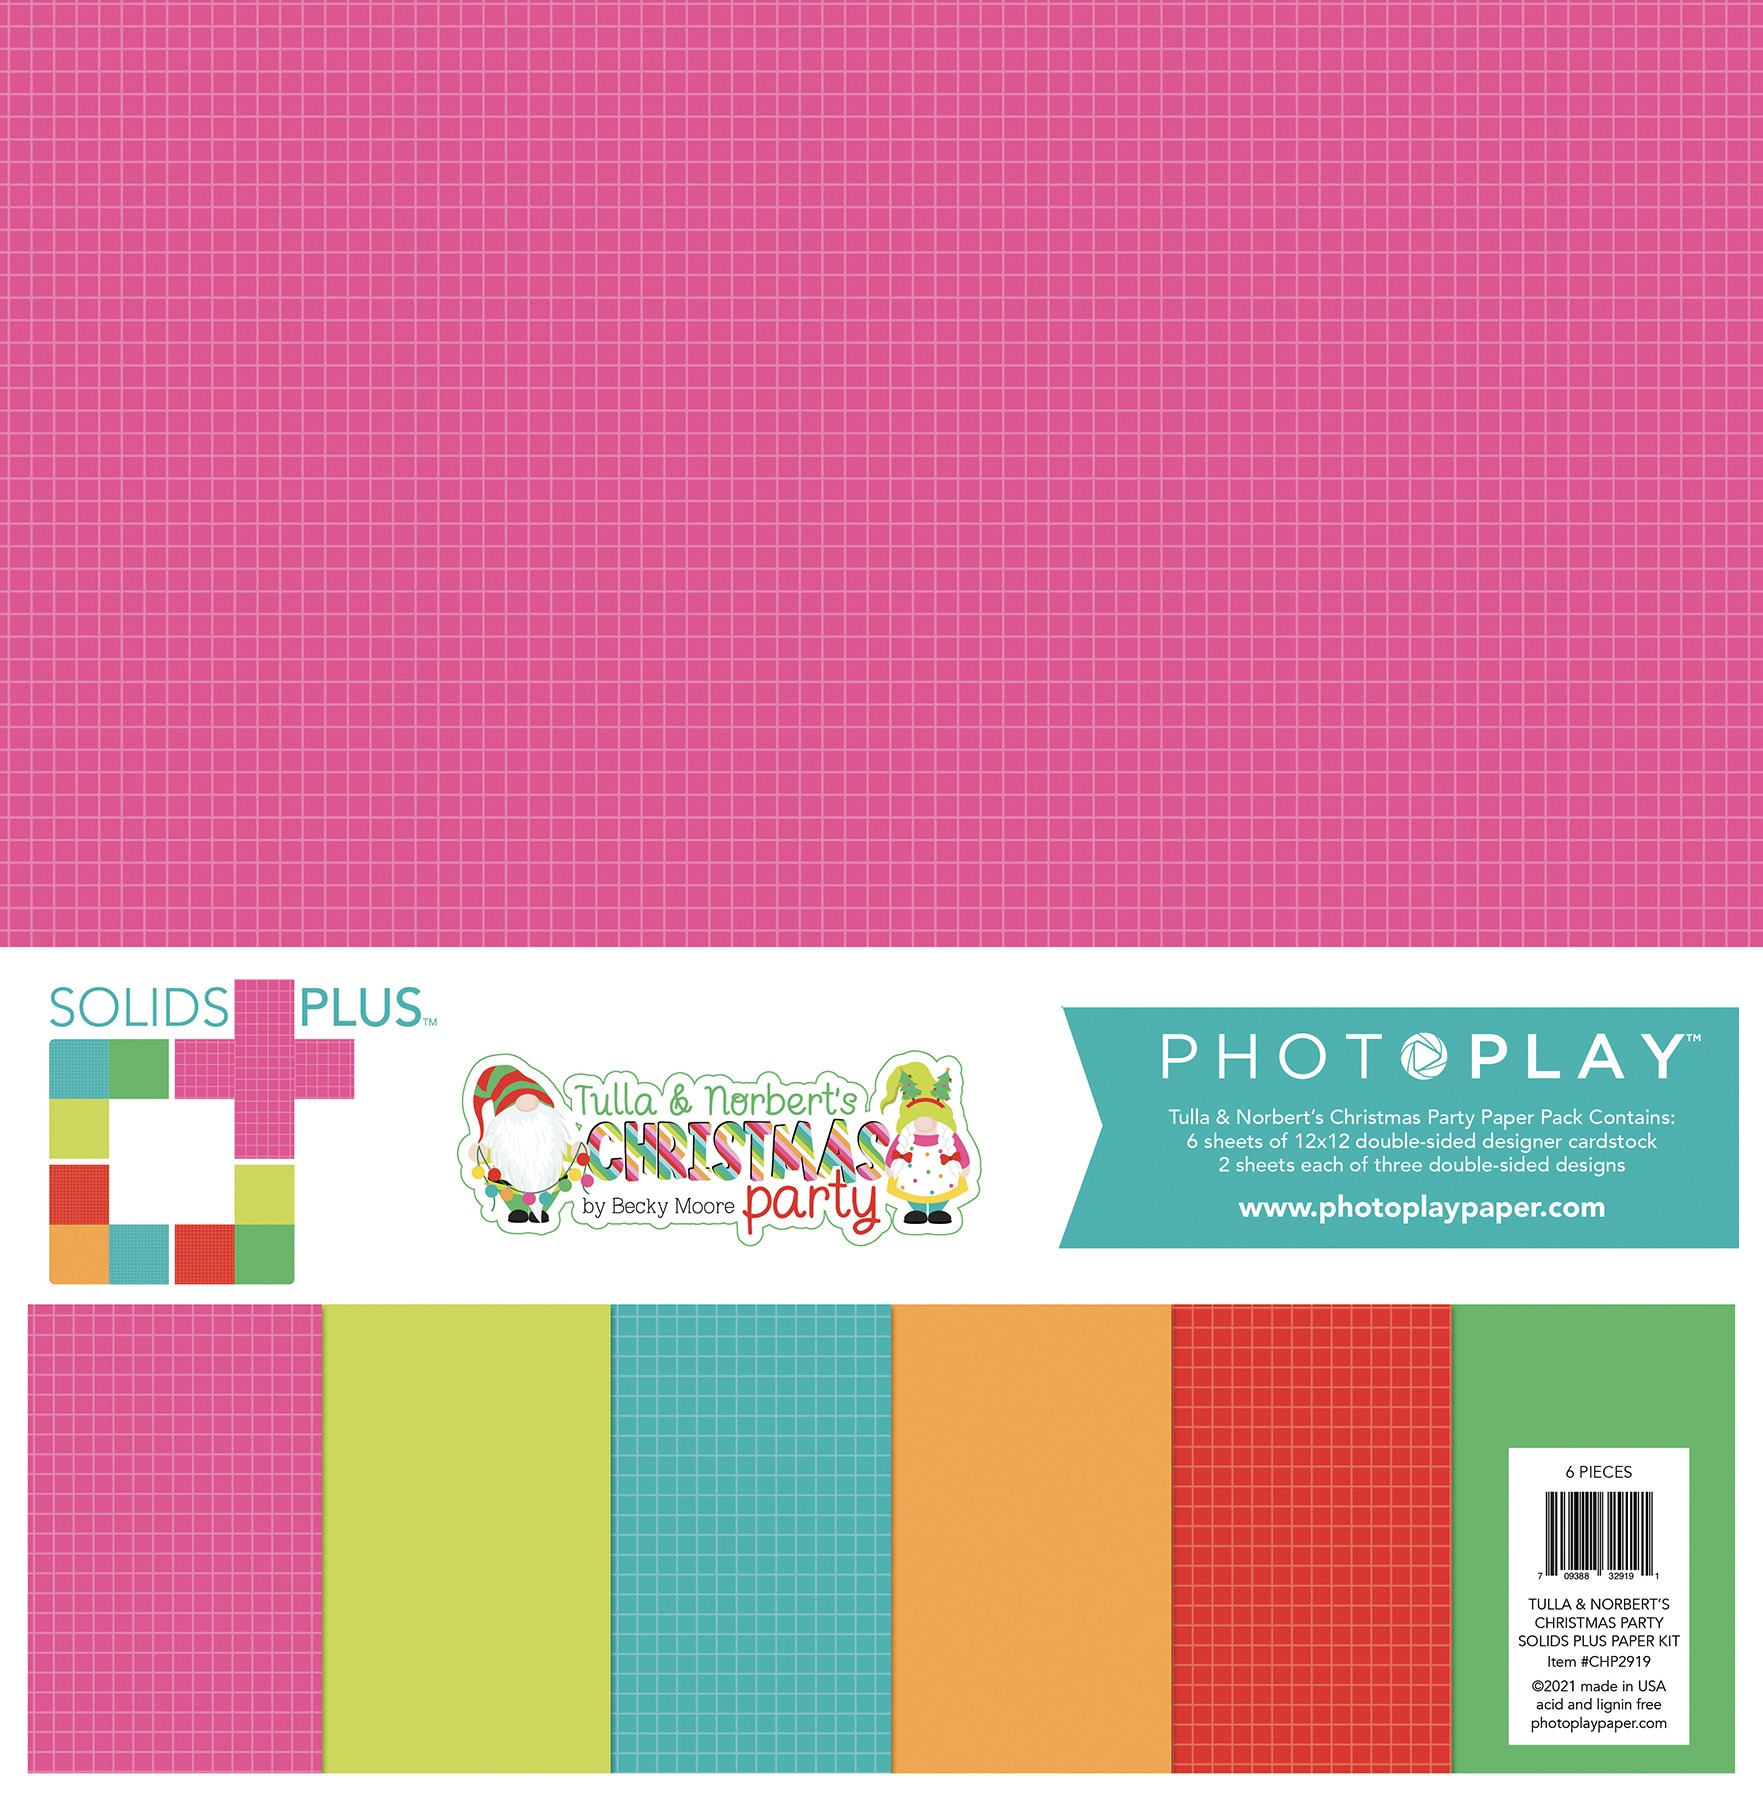 Photoplay Double-Sided Solids + Paper Pack 12X12 6/Pkg-Tulla & Norbert's Christmas Party